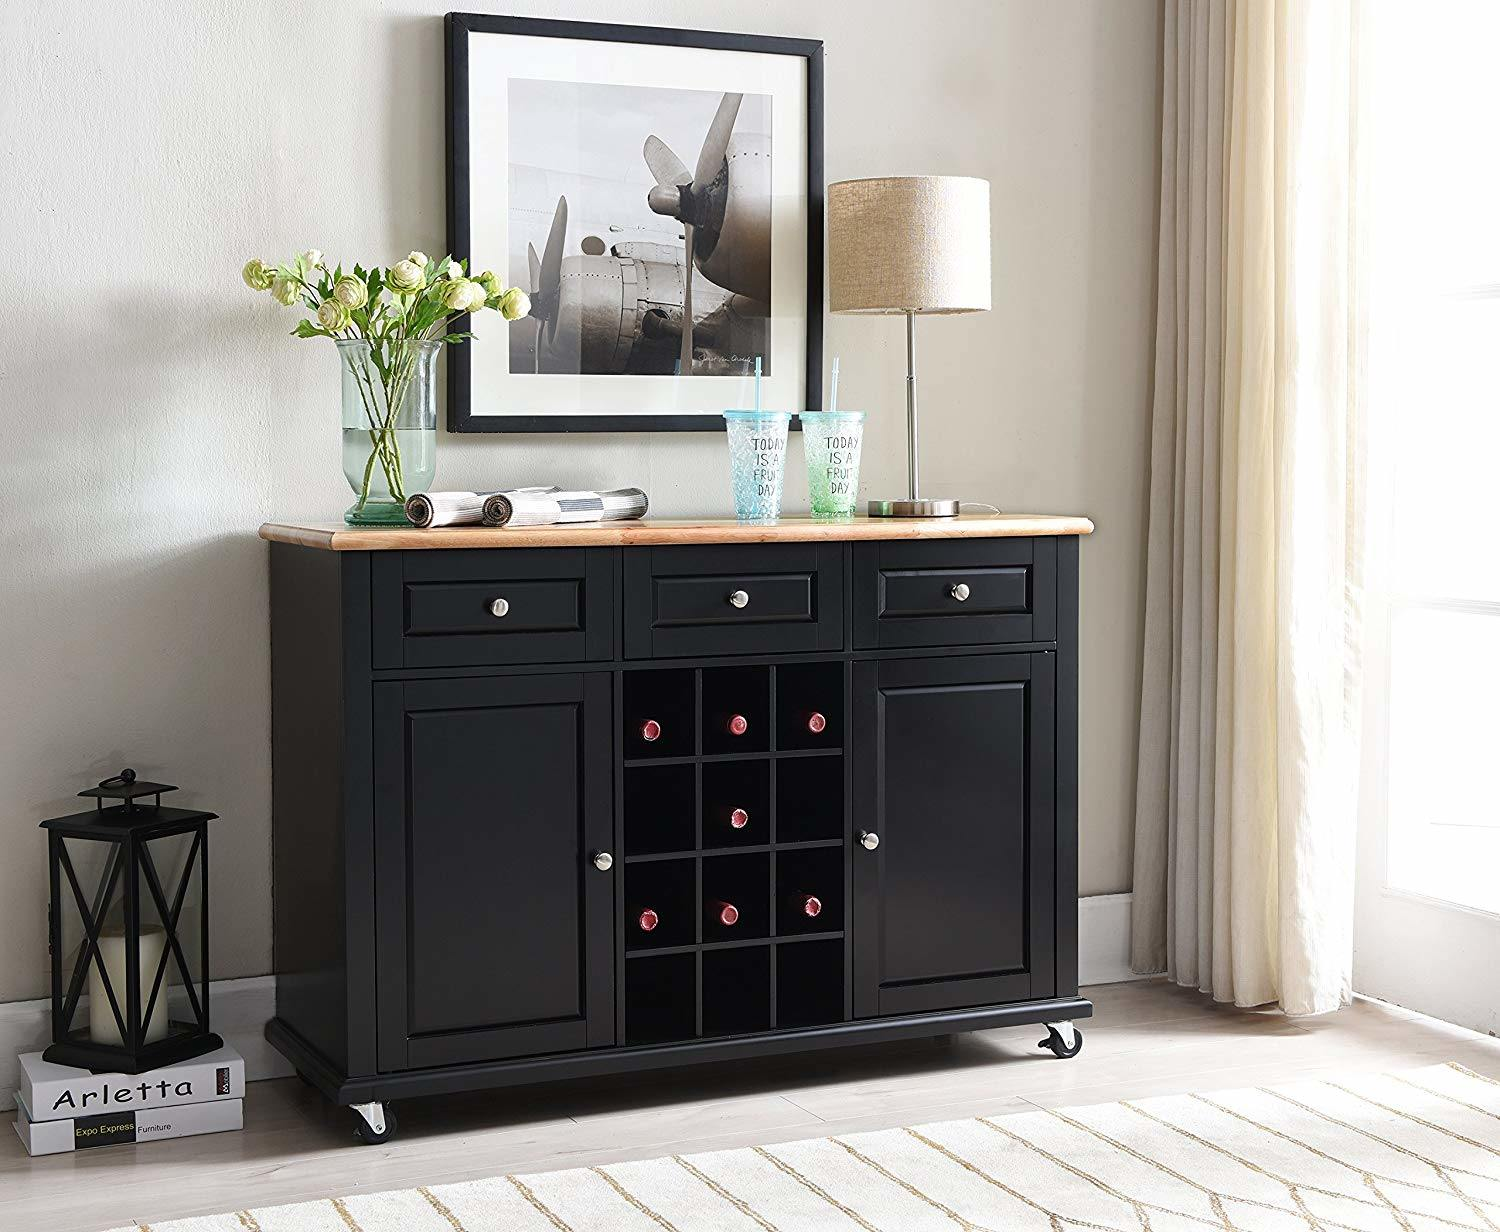 Picture of: Chinese Furniture Wooden Buffet Wooden Kitchen Cabinet Easy Assembly Black Wine Rack Buffet Sideboard With Storage China Modern Kitchen Cabinet Antique Reproduction Furniture